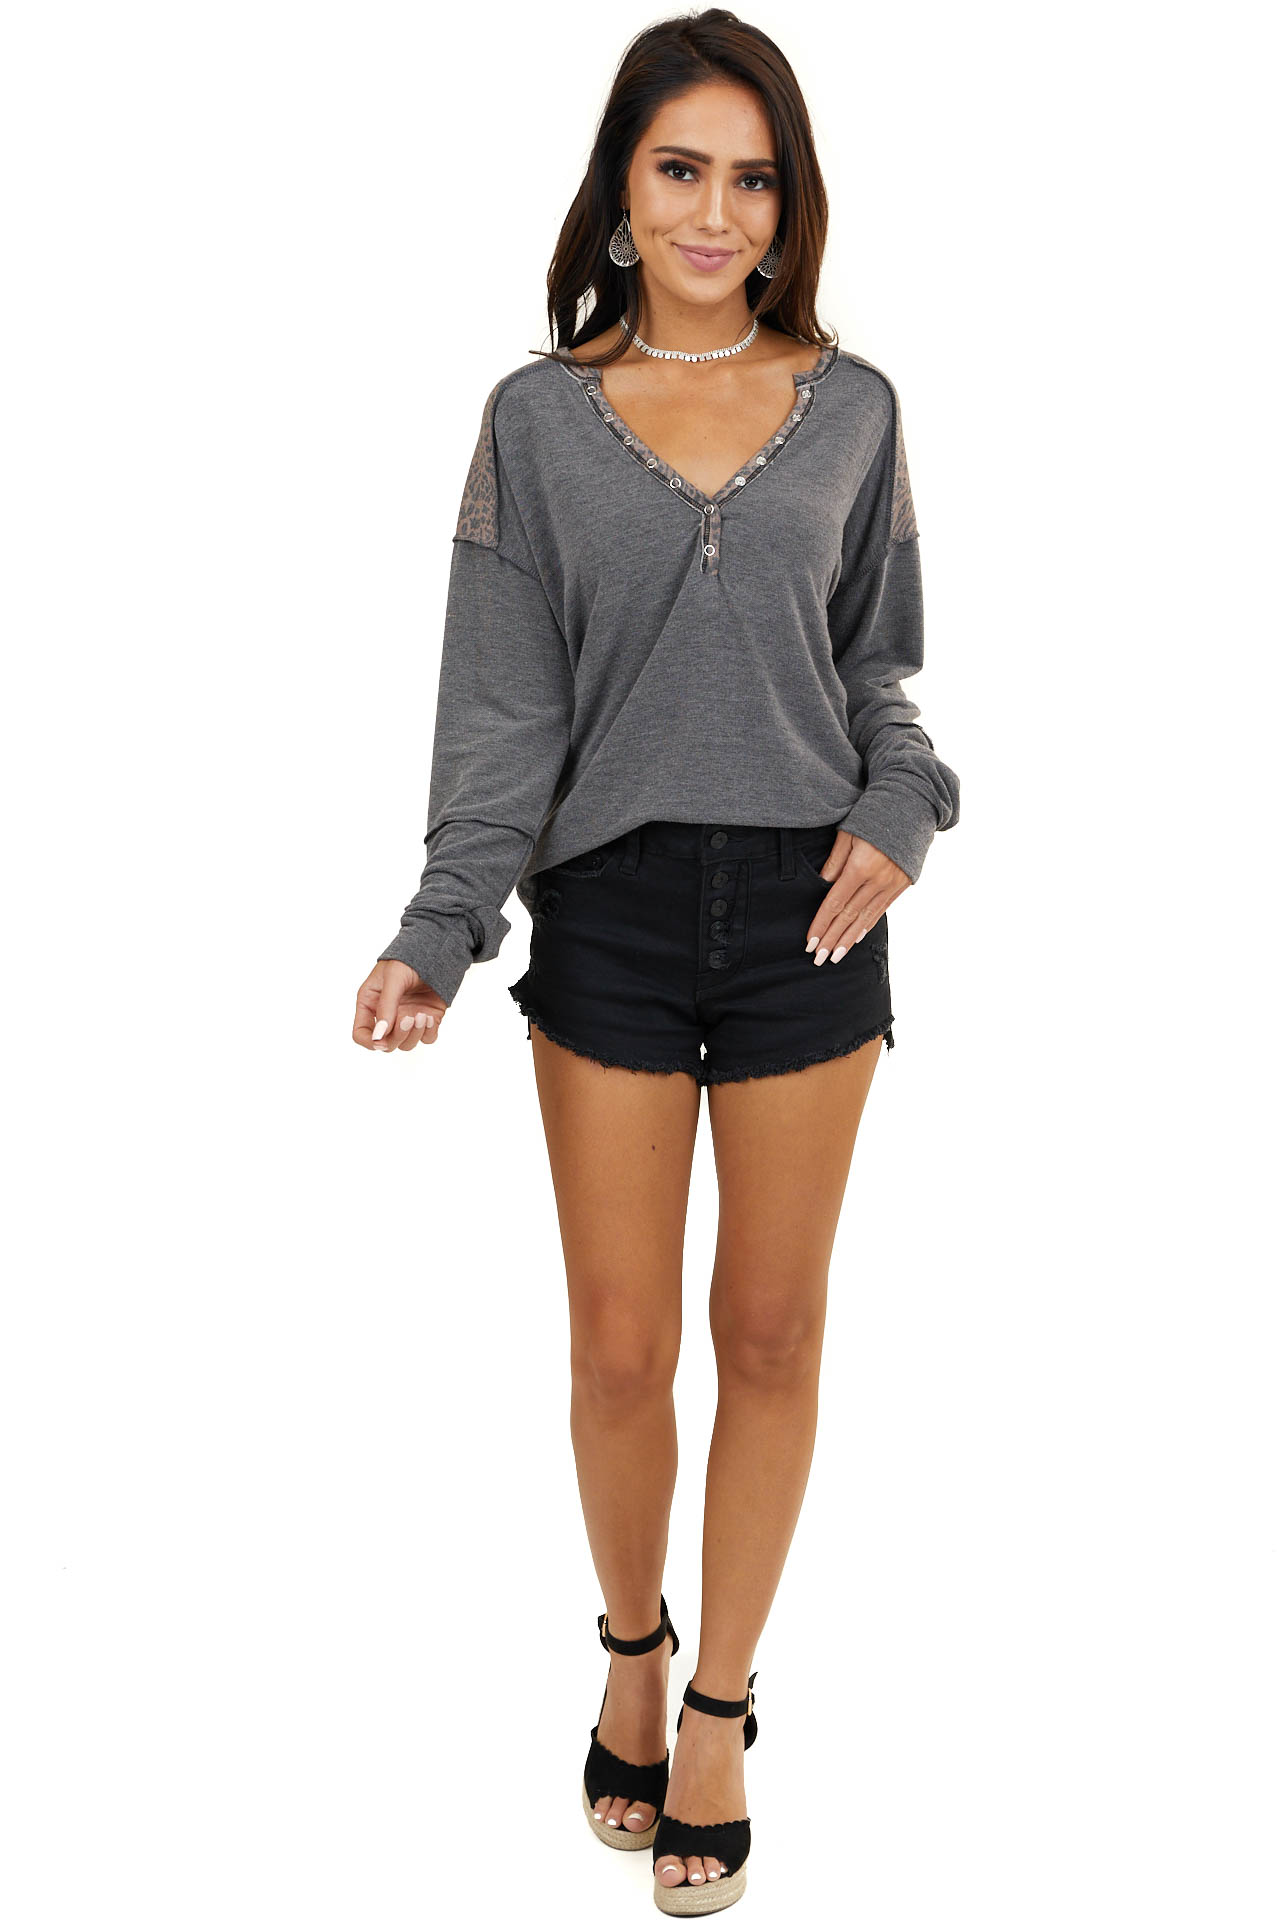 Charcoal Long Sleeve Henley Top with Leopard Print Details